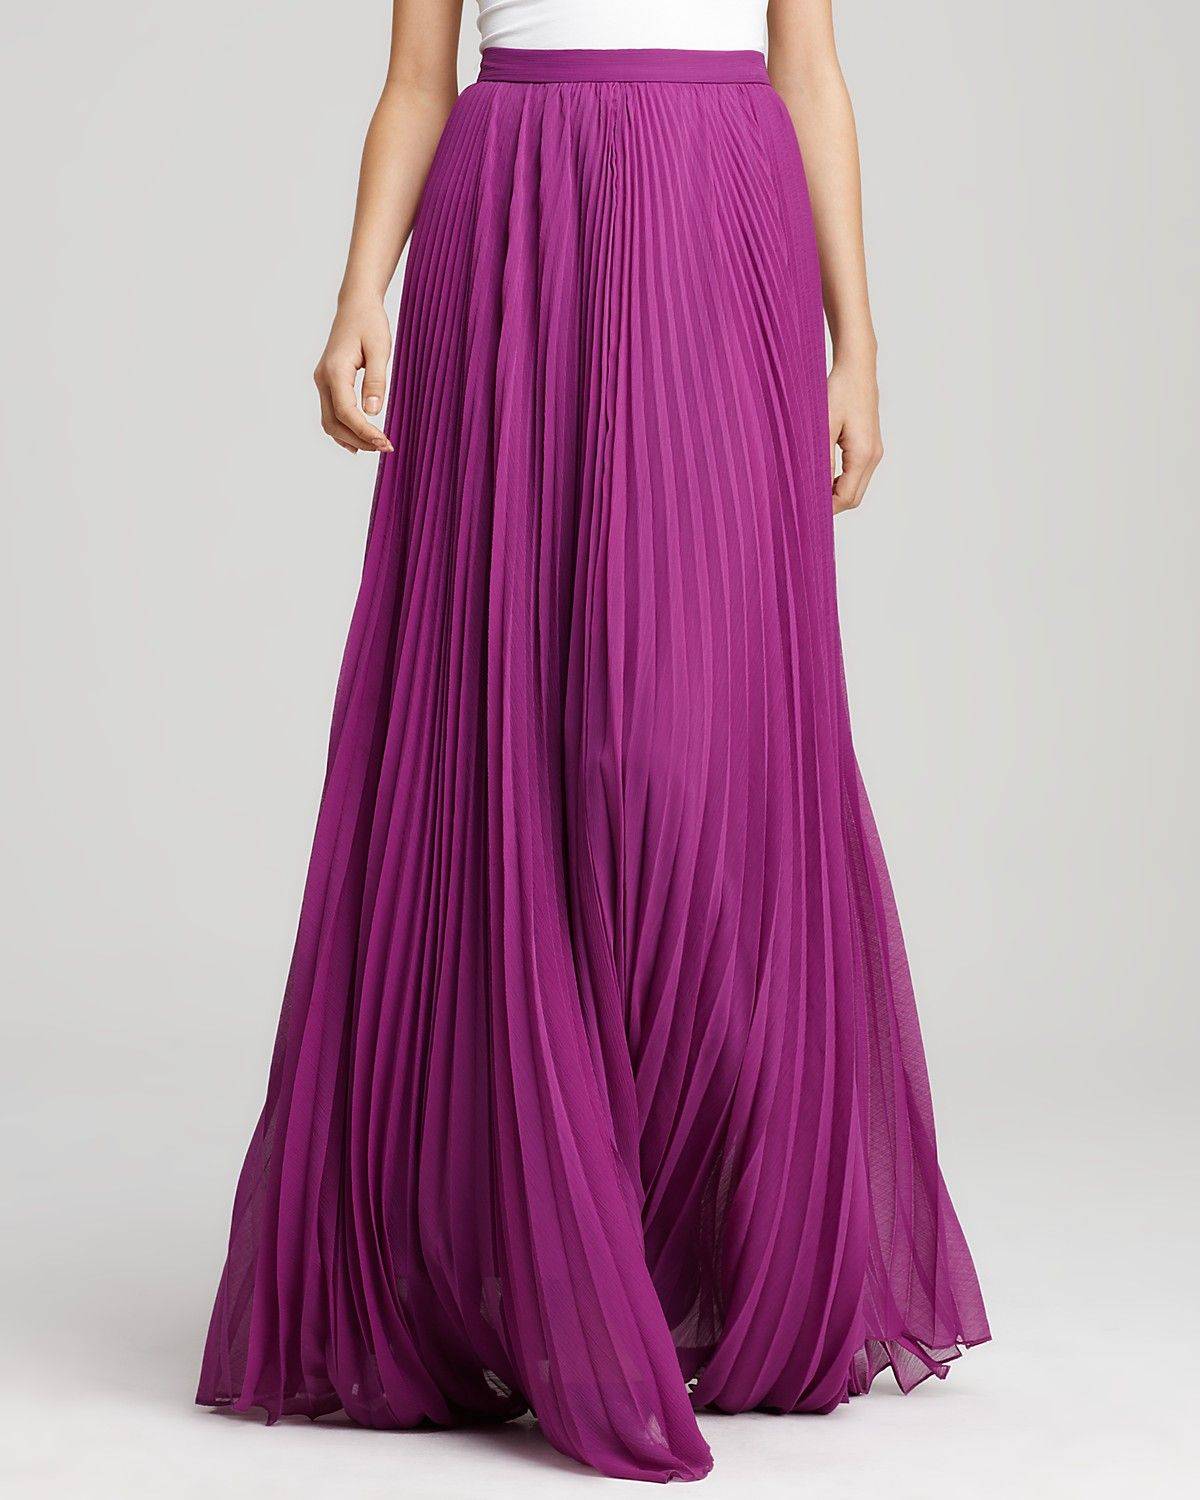 0f9e791d92 i love maxi skirts/dresses. reminds me of a skirt my mom has in light pink.